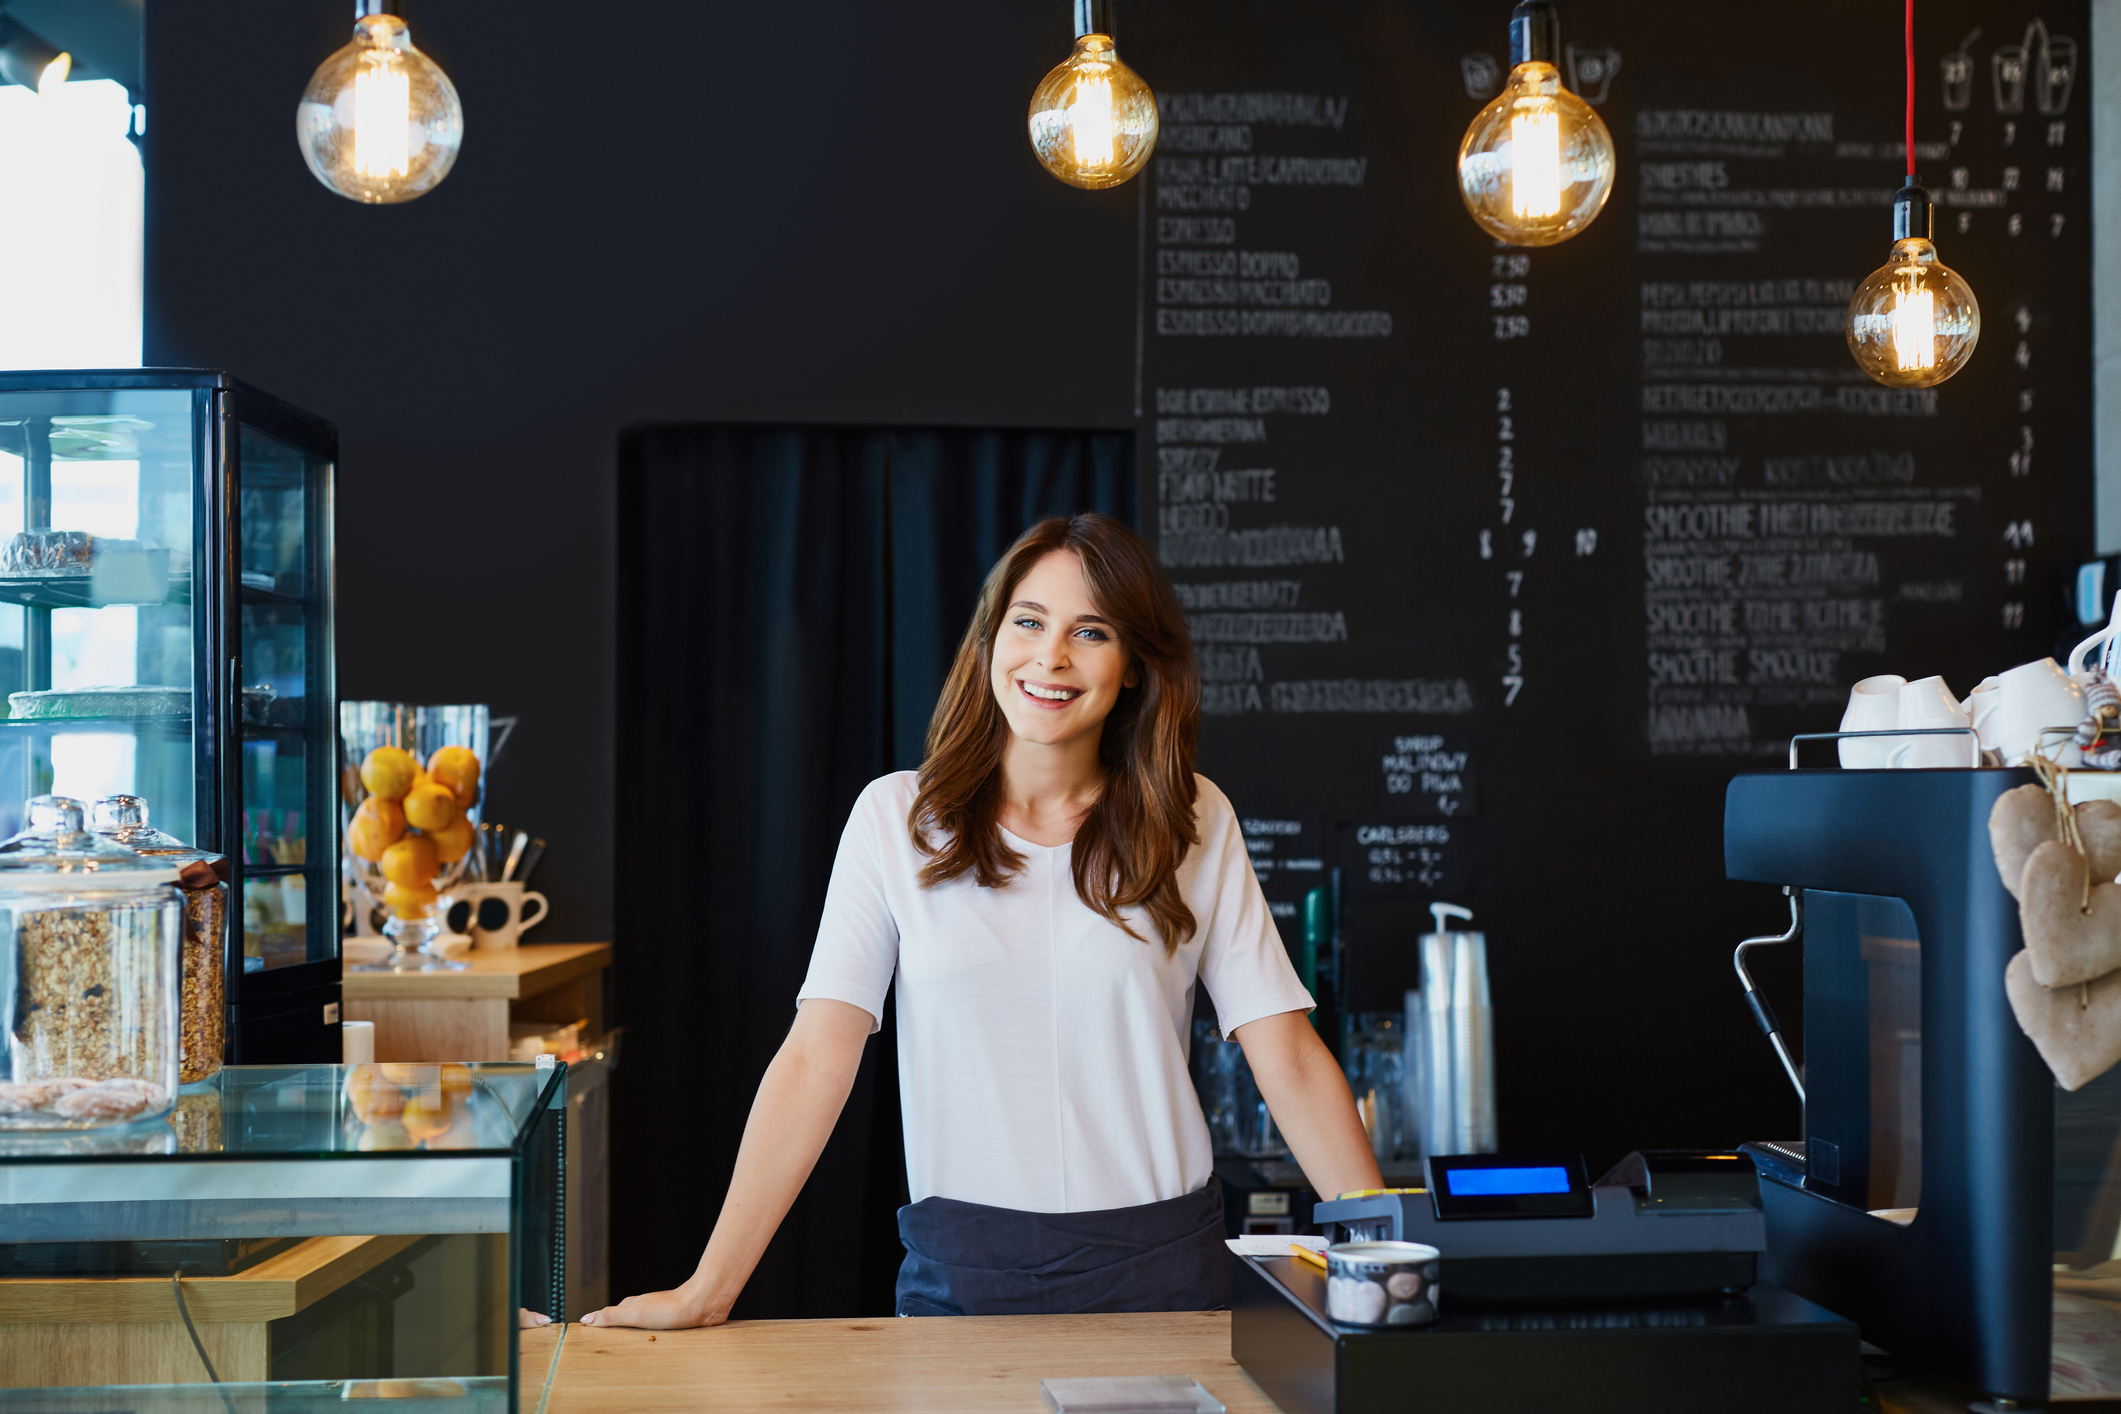 smiling young woman standing behind the counter in a cafe